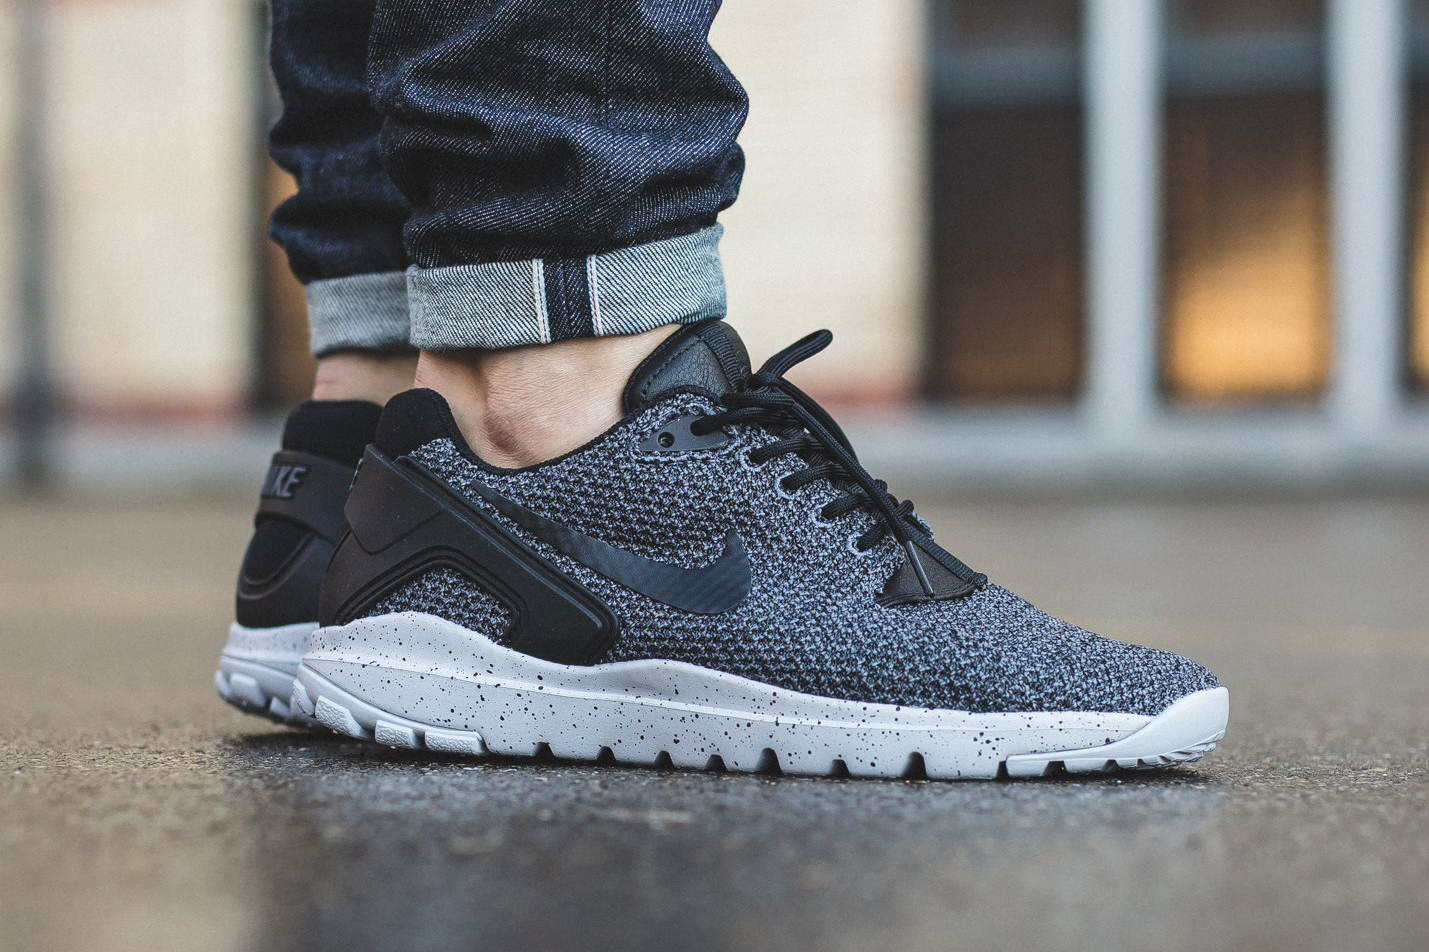 Nike's Koth Ultra Low Gets Knit Jacquard Construction